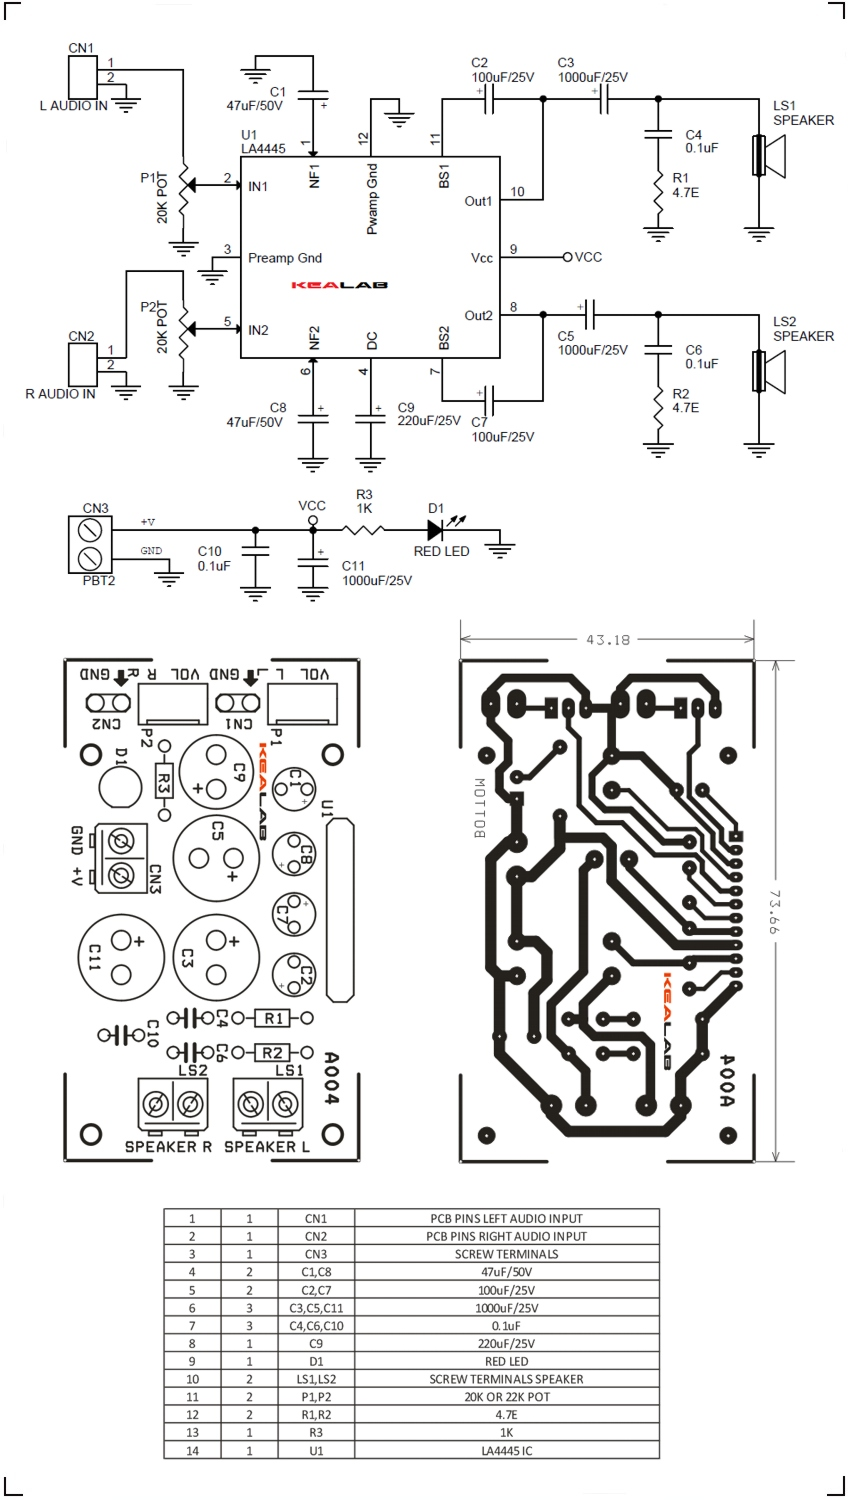 55w Stereo Audio Amplifier Using La4445 Circuit Ideas I Projects Dual Op Amp Diagram Amplifiercircuit 2 Channel Schematic